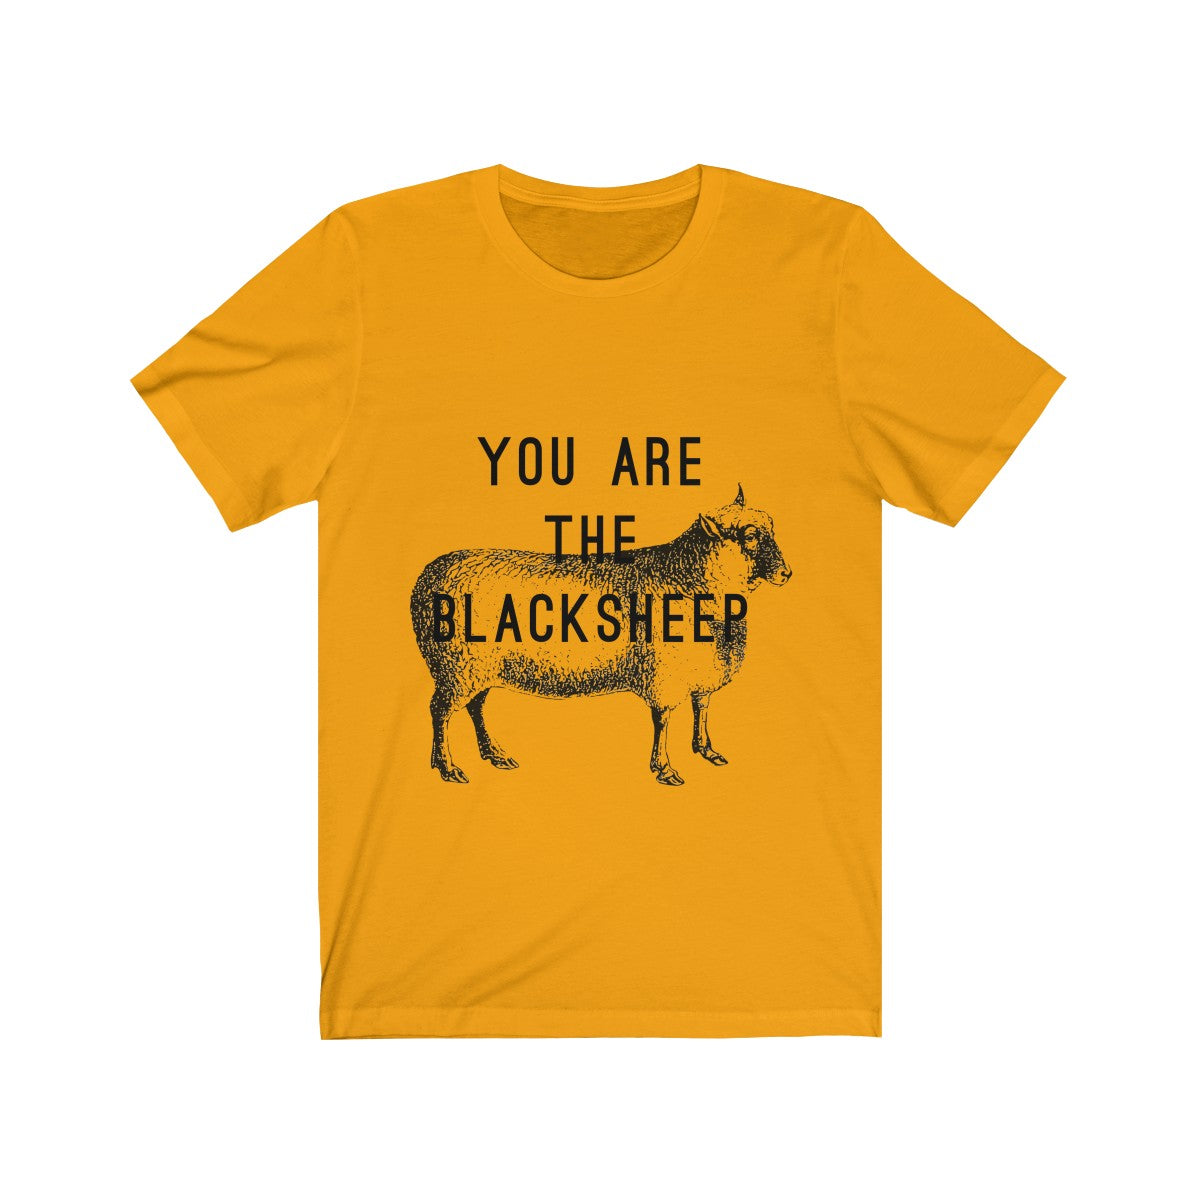 You Are The Blacksheep